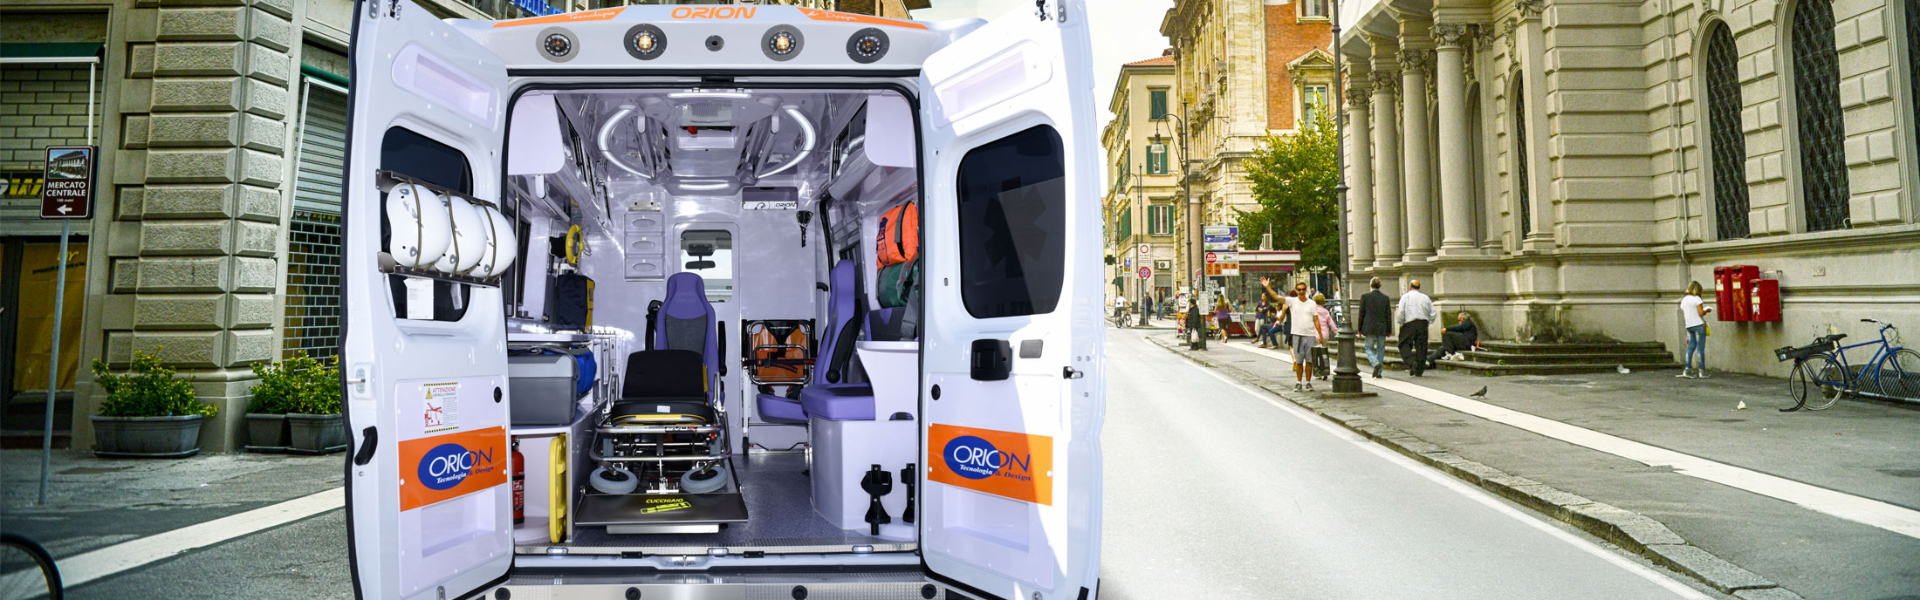 Ambulances for rescue services